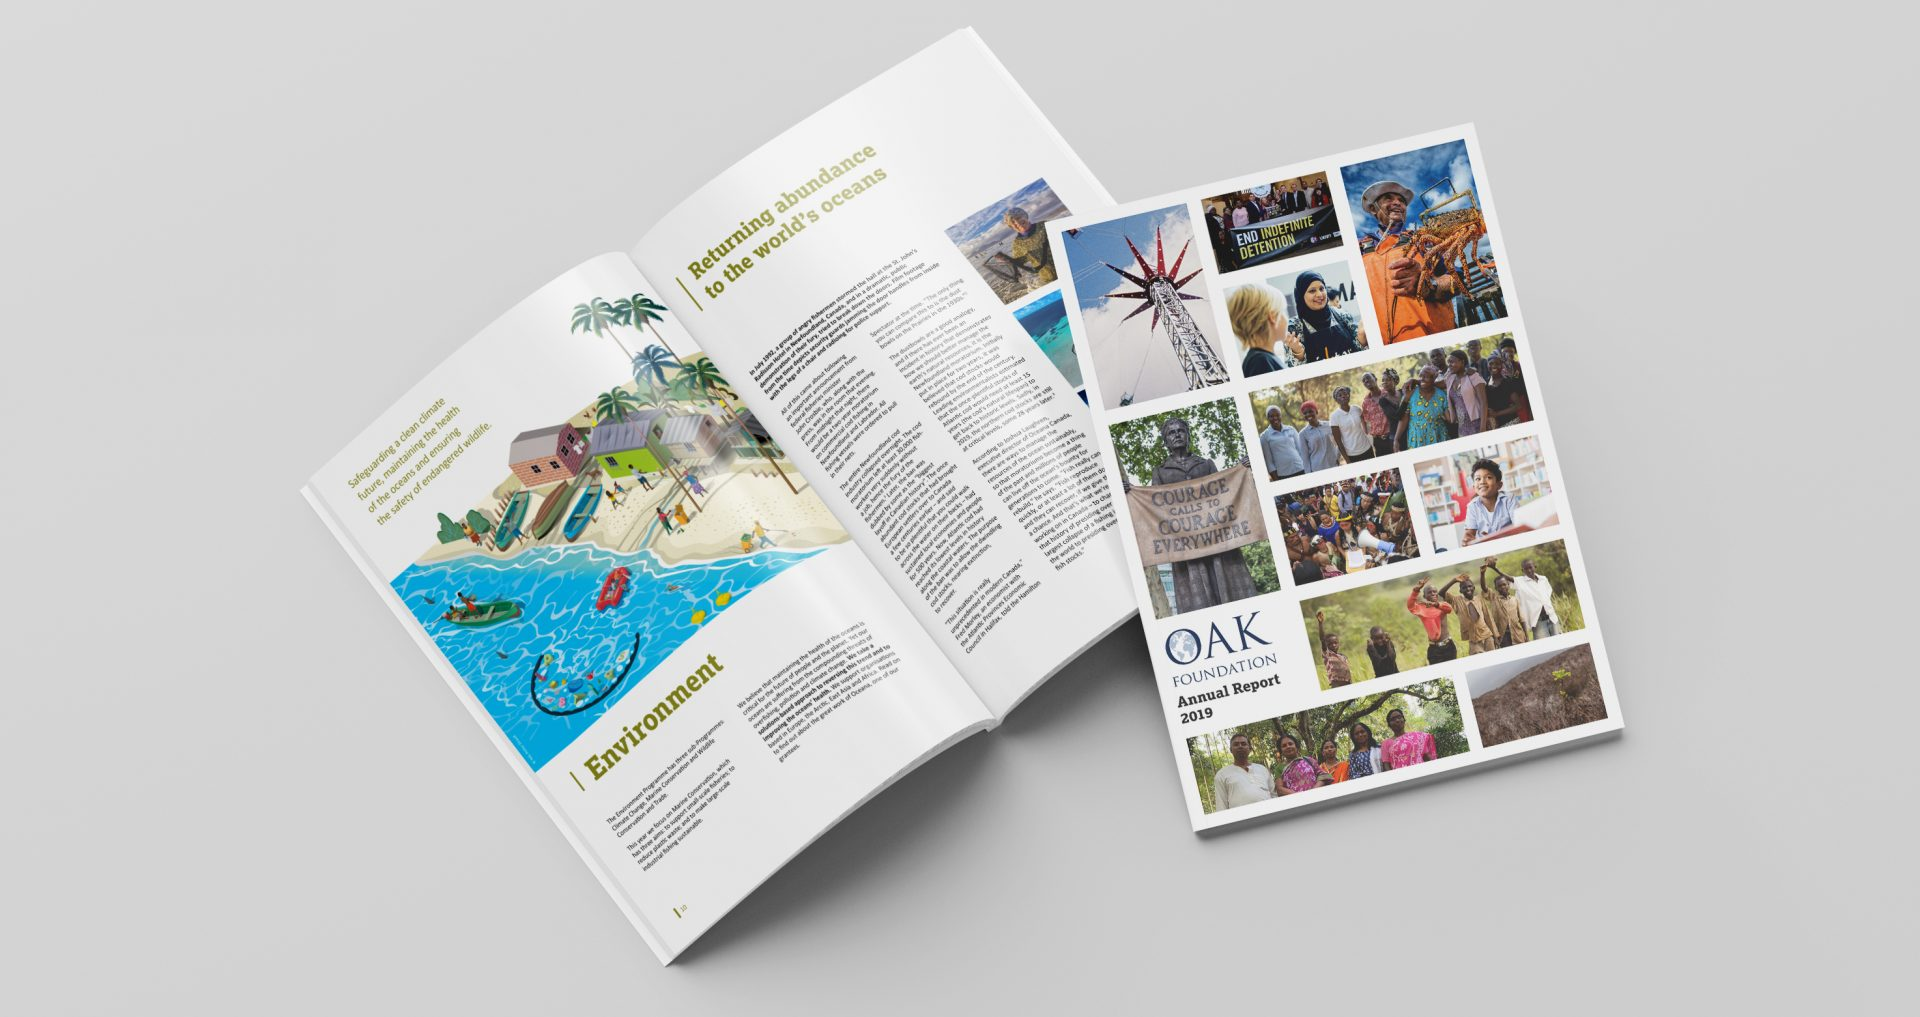 Oak-Foundation-Annual-Report